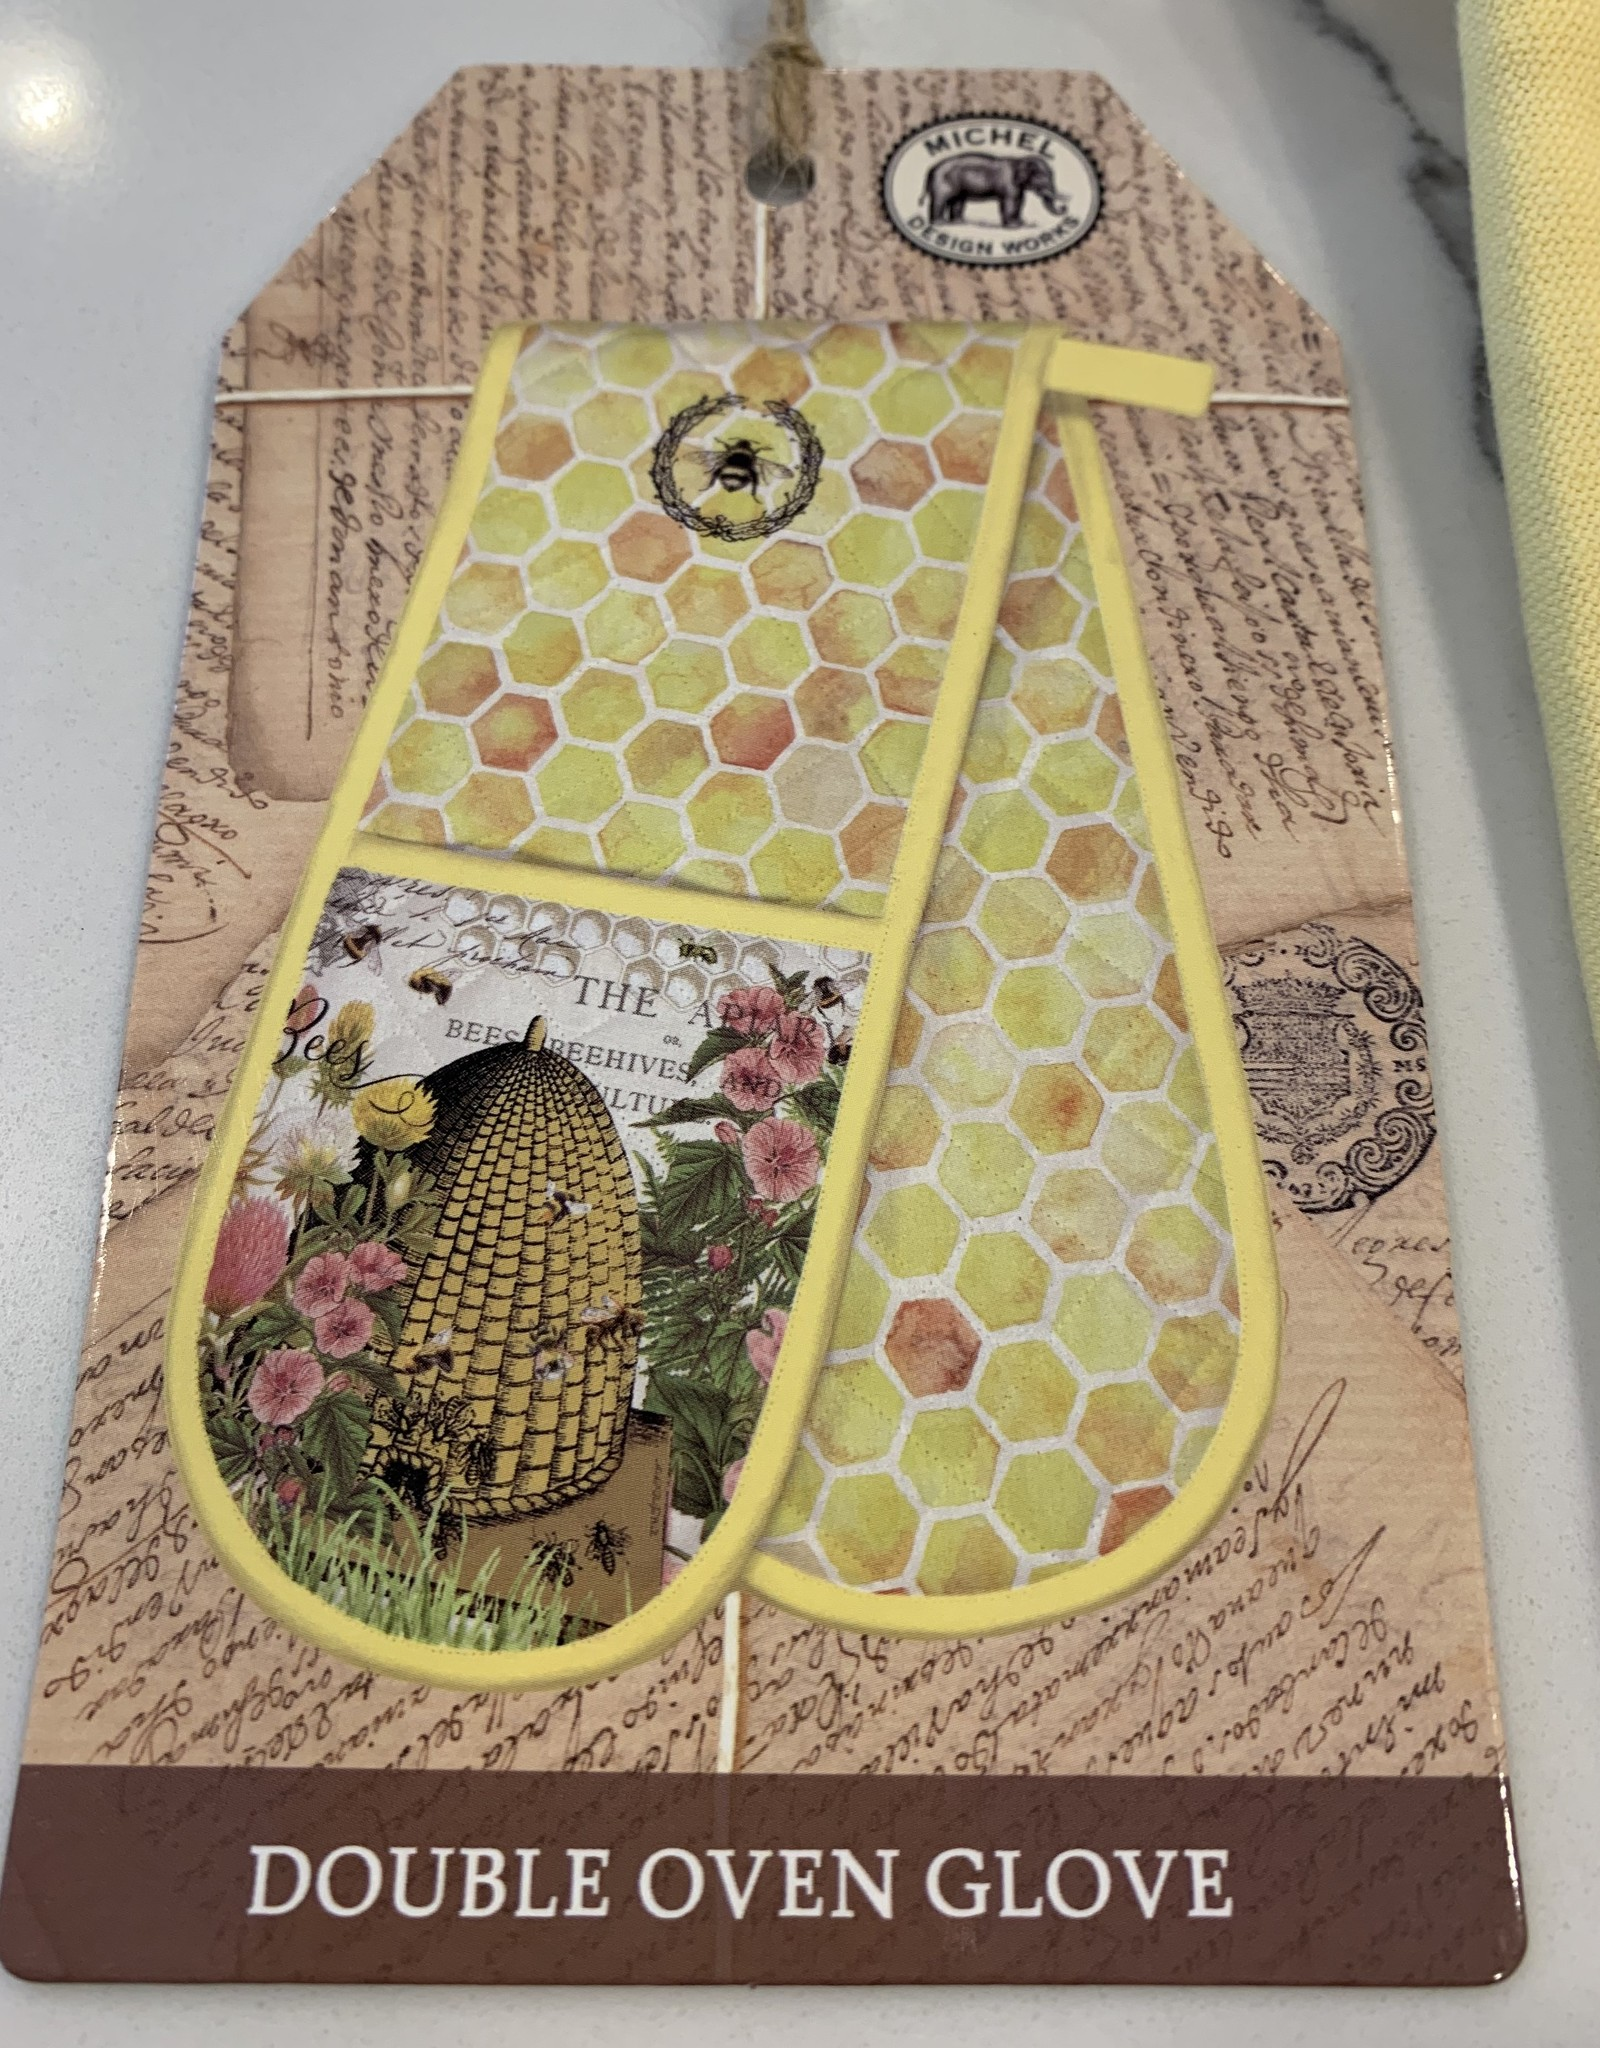 MICHEL DESIGNS Honey and Clover Doble Oven Glove